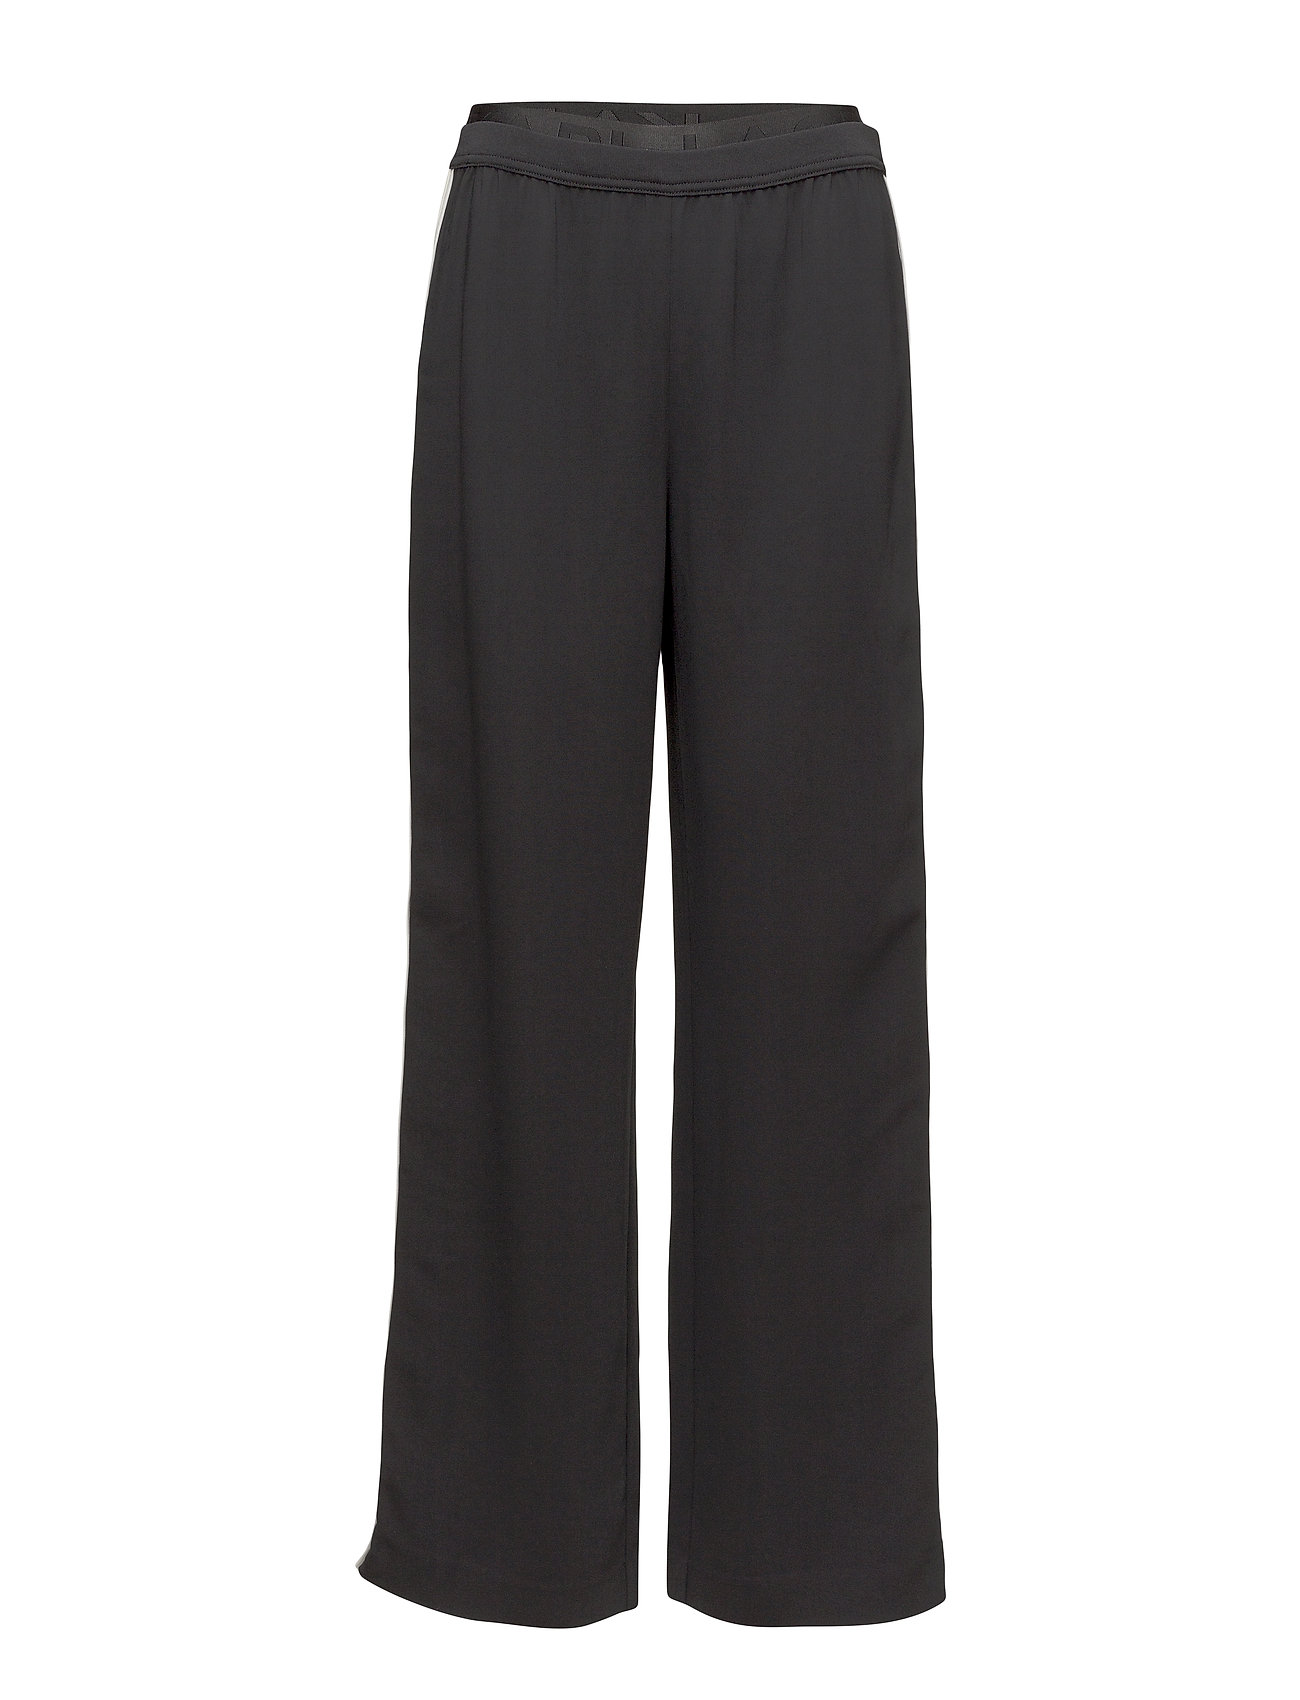 Image of Karl Lagerfeld-Wide Leg Logo Sweatpants Vide Bukser Sort Karl Lagerfeld (3406157749)